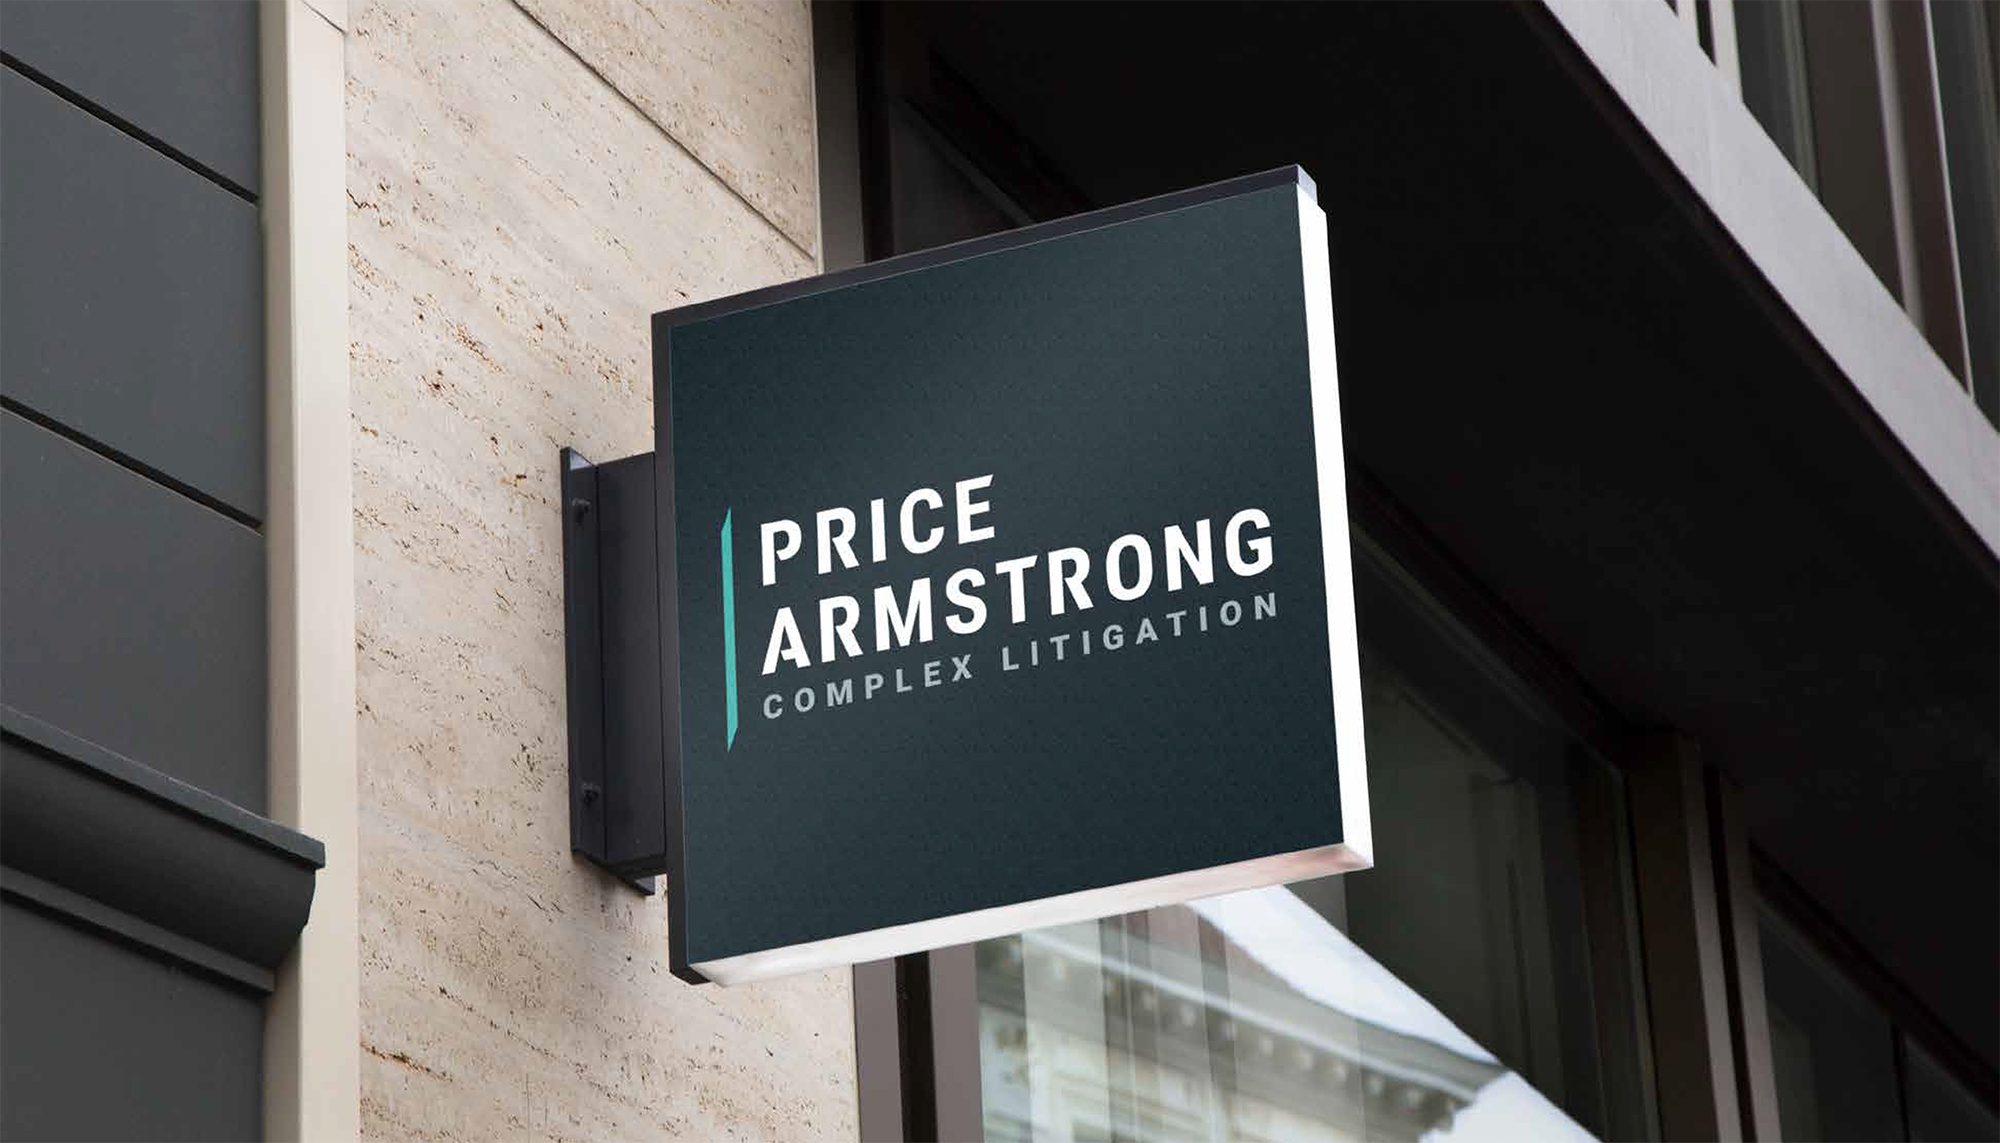 Price Armstrong